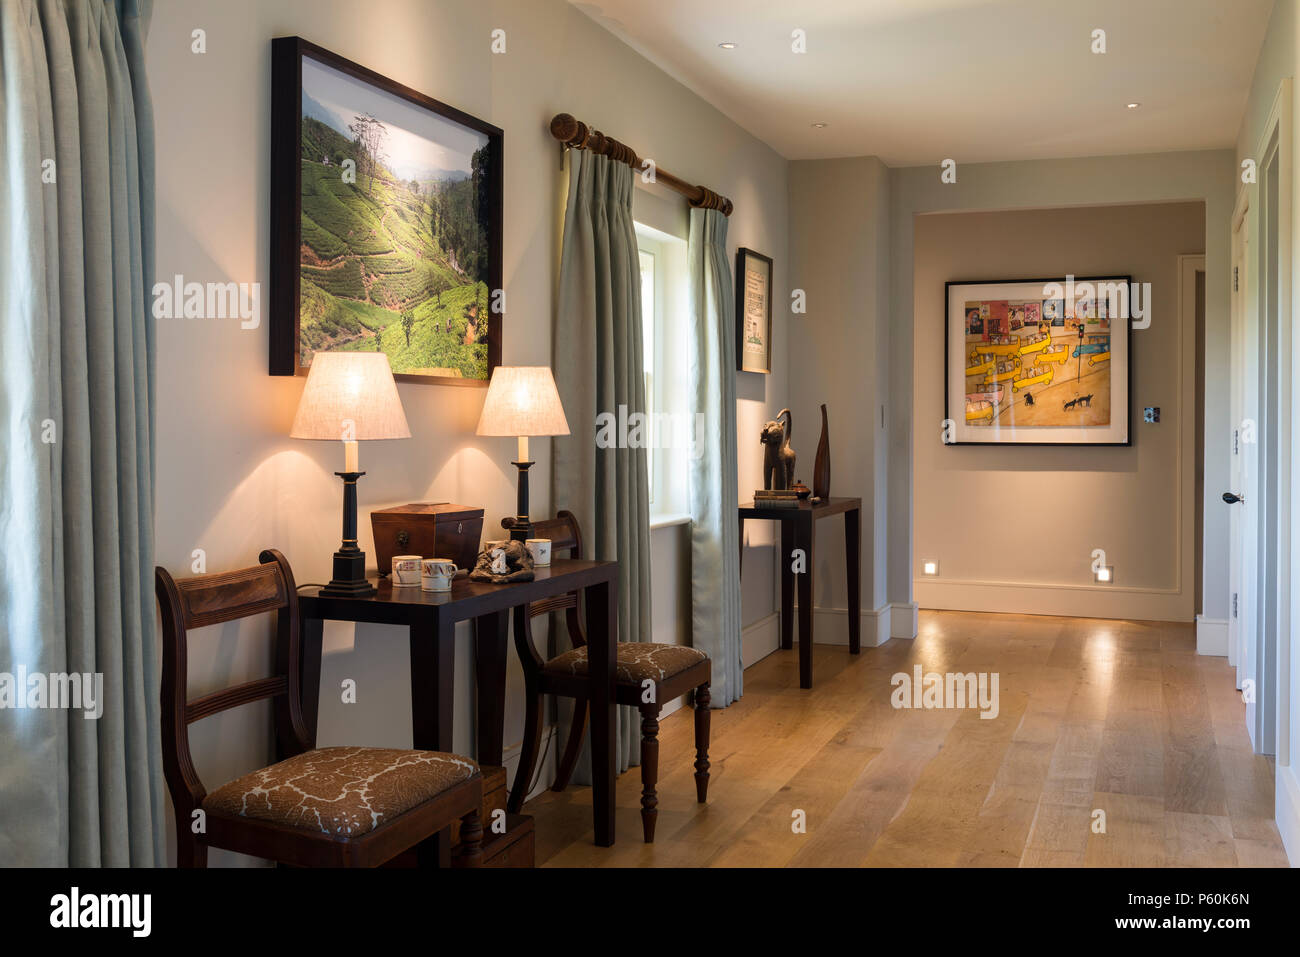 Lit lamps in hallway - Stock Image